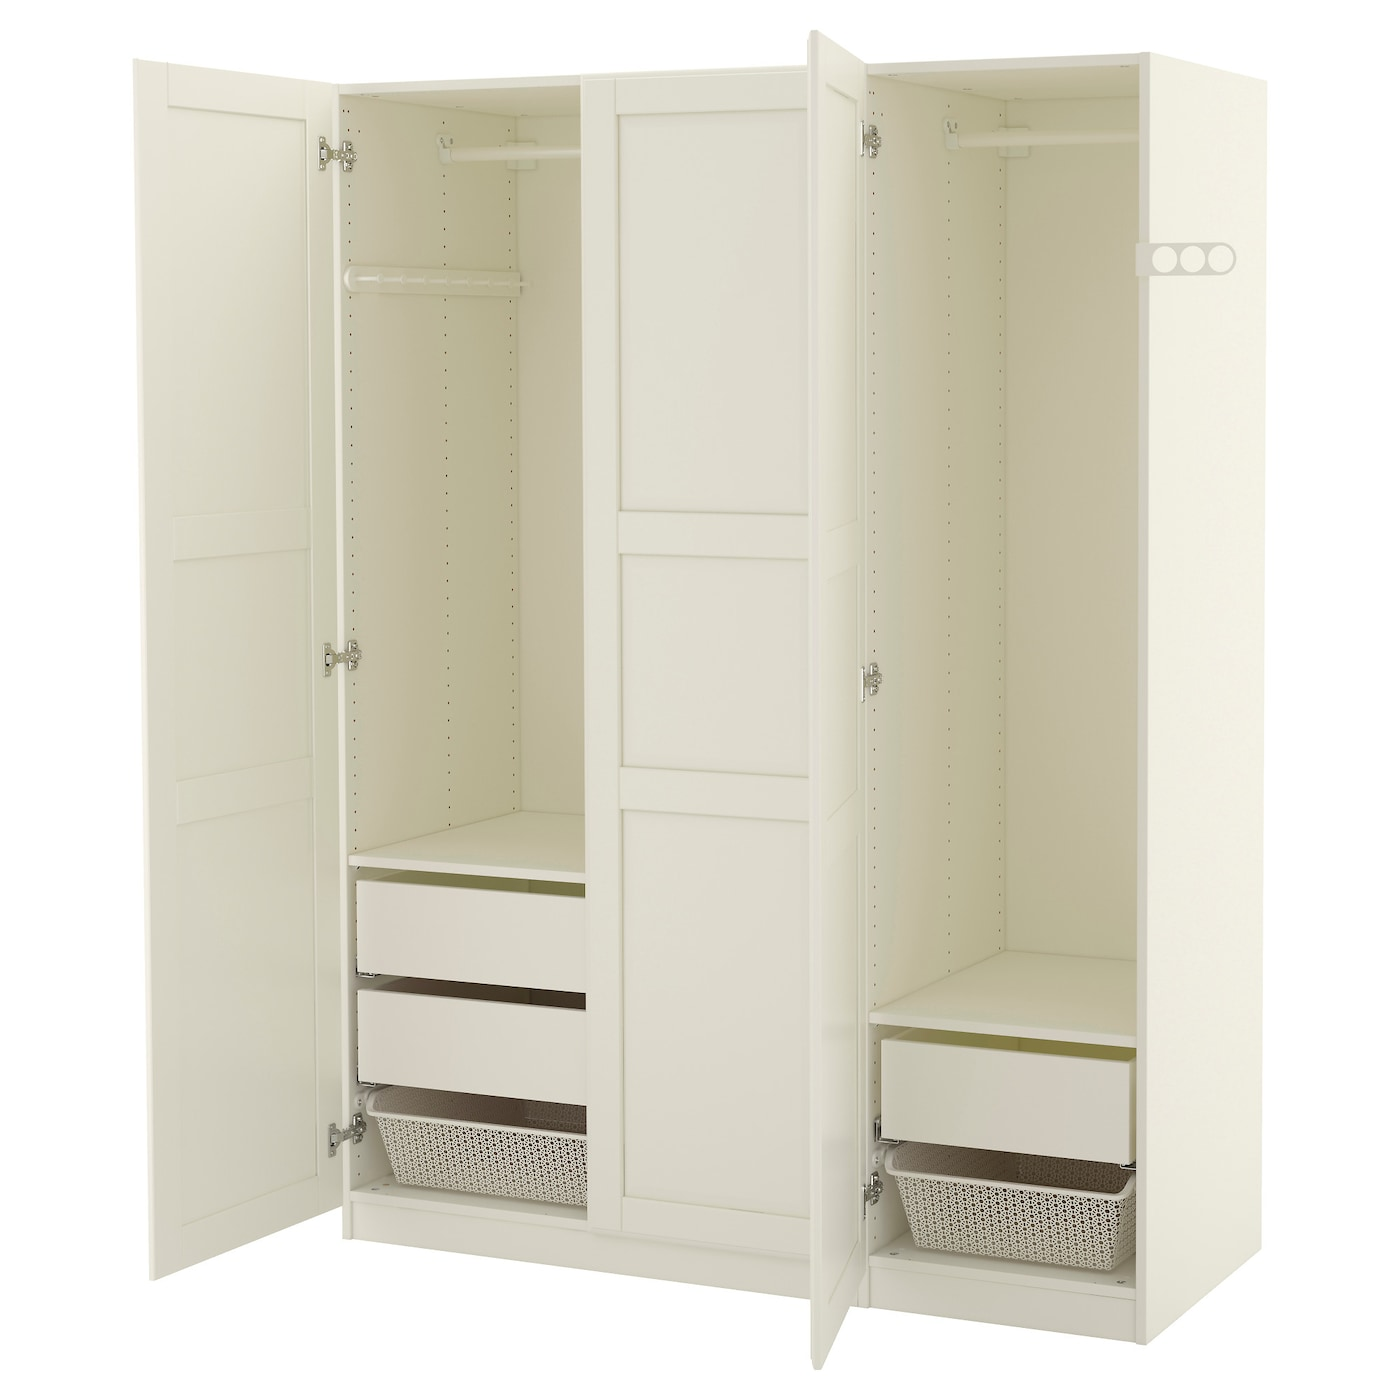 pax wardrobe white tyssedal white 150x60x201 cm ikea. Black Bedroom Furniture Sets. Home Design Ideas